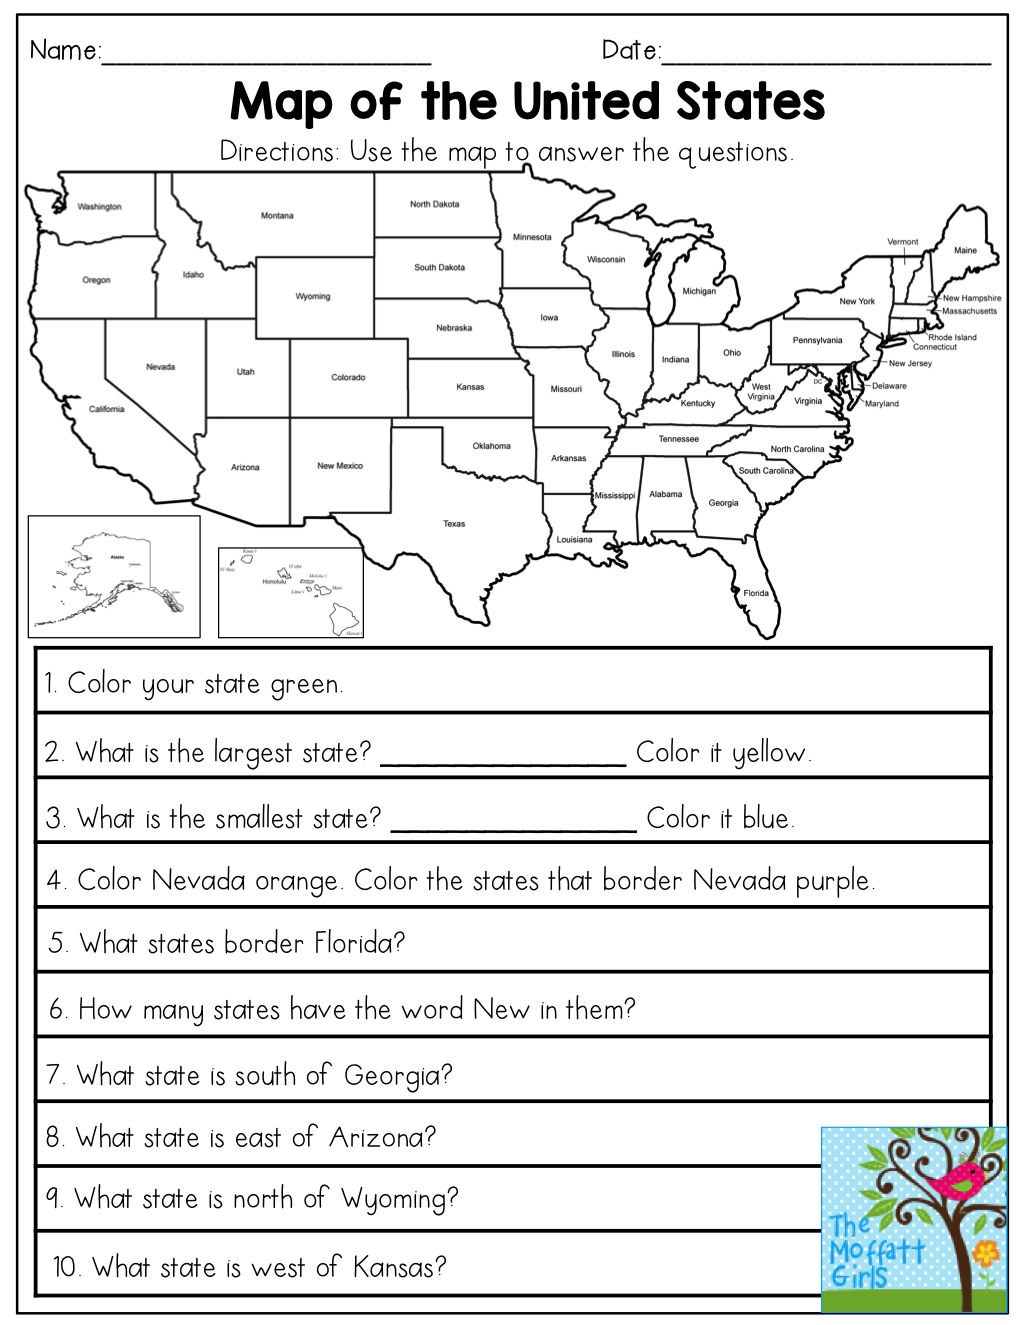 United States Map Activities.Map Of The United States Answer The Questions This November No